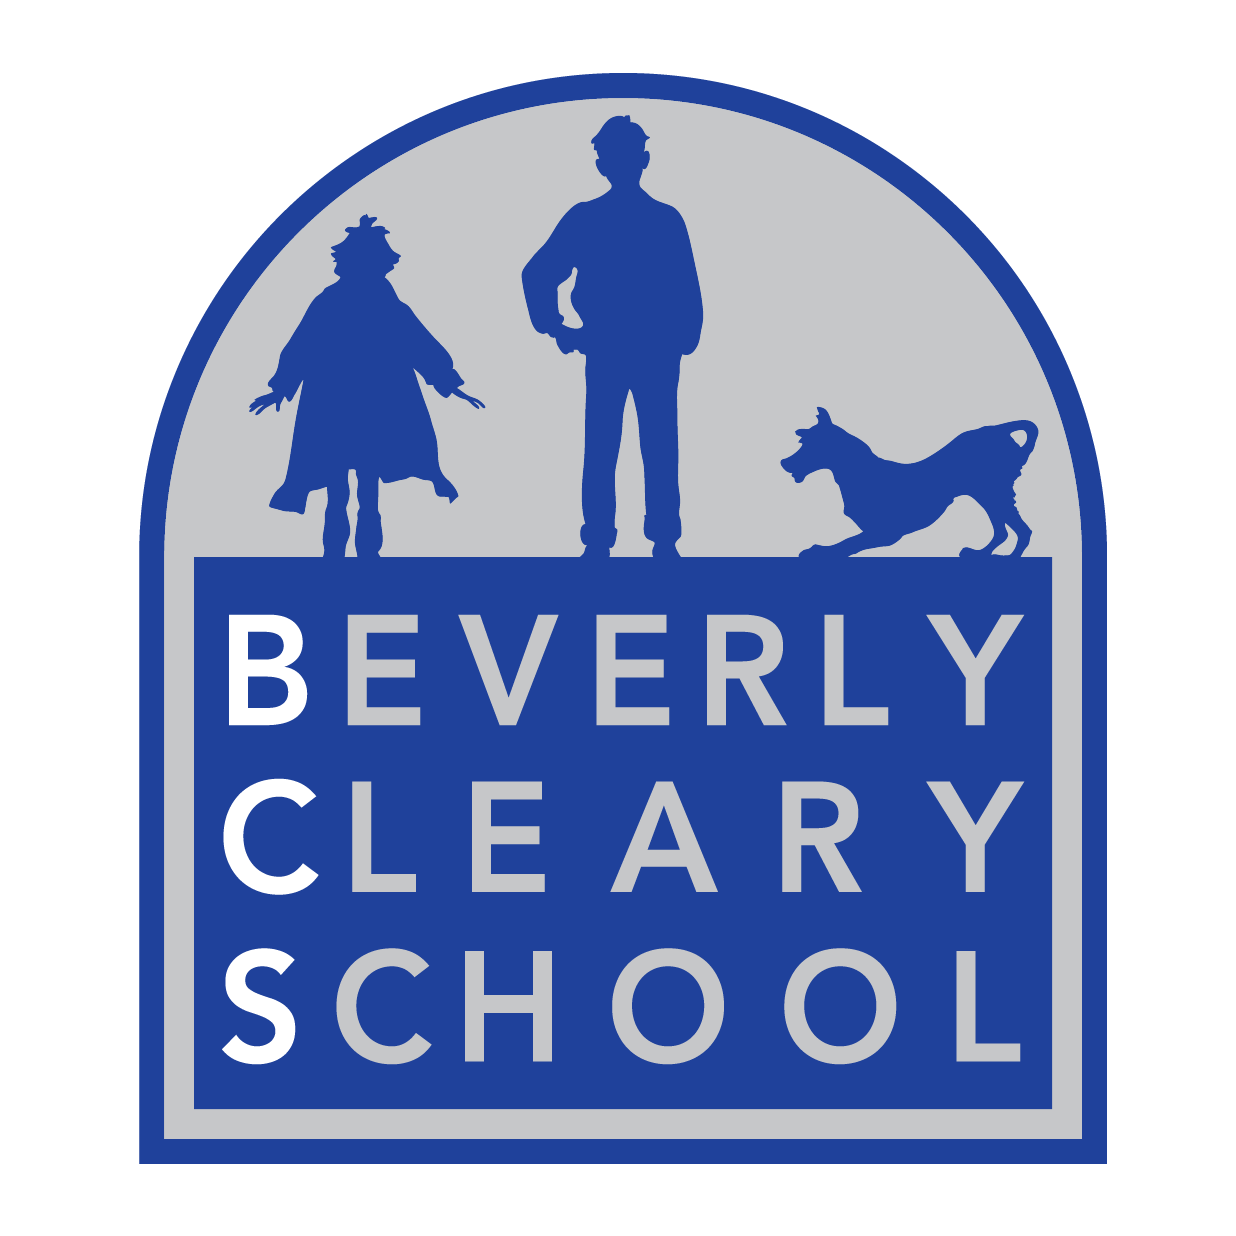 Beverly Vlearly School Logo